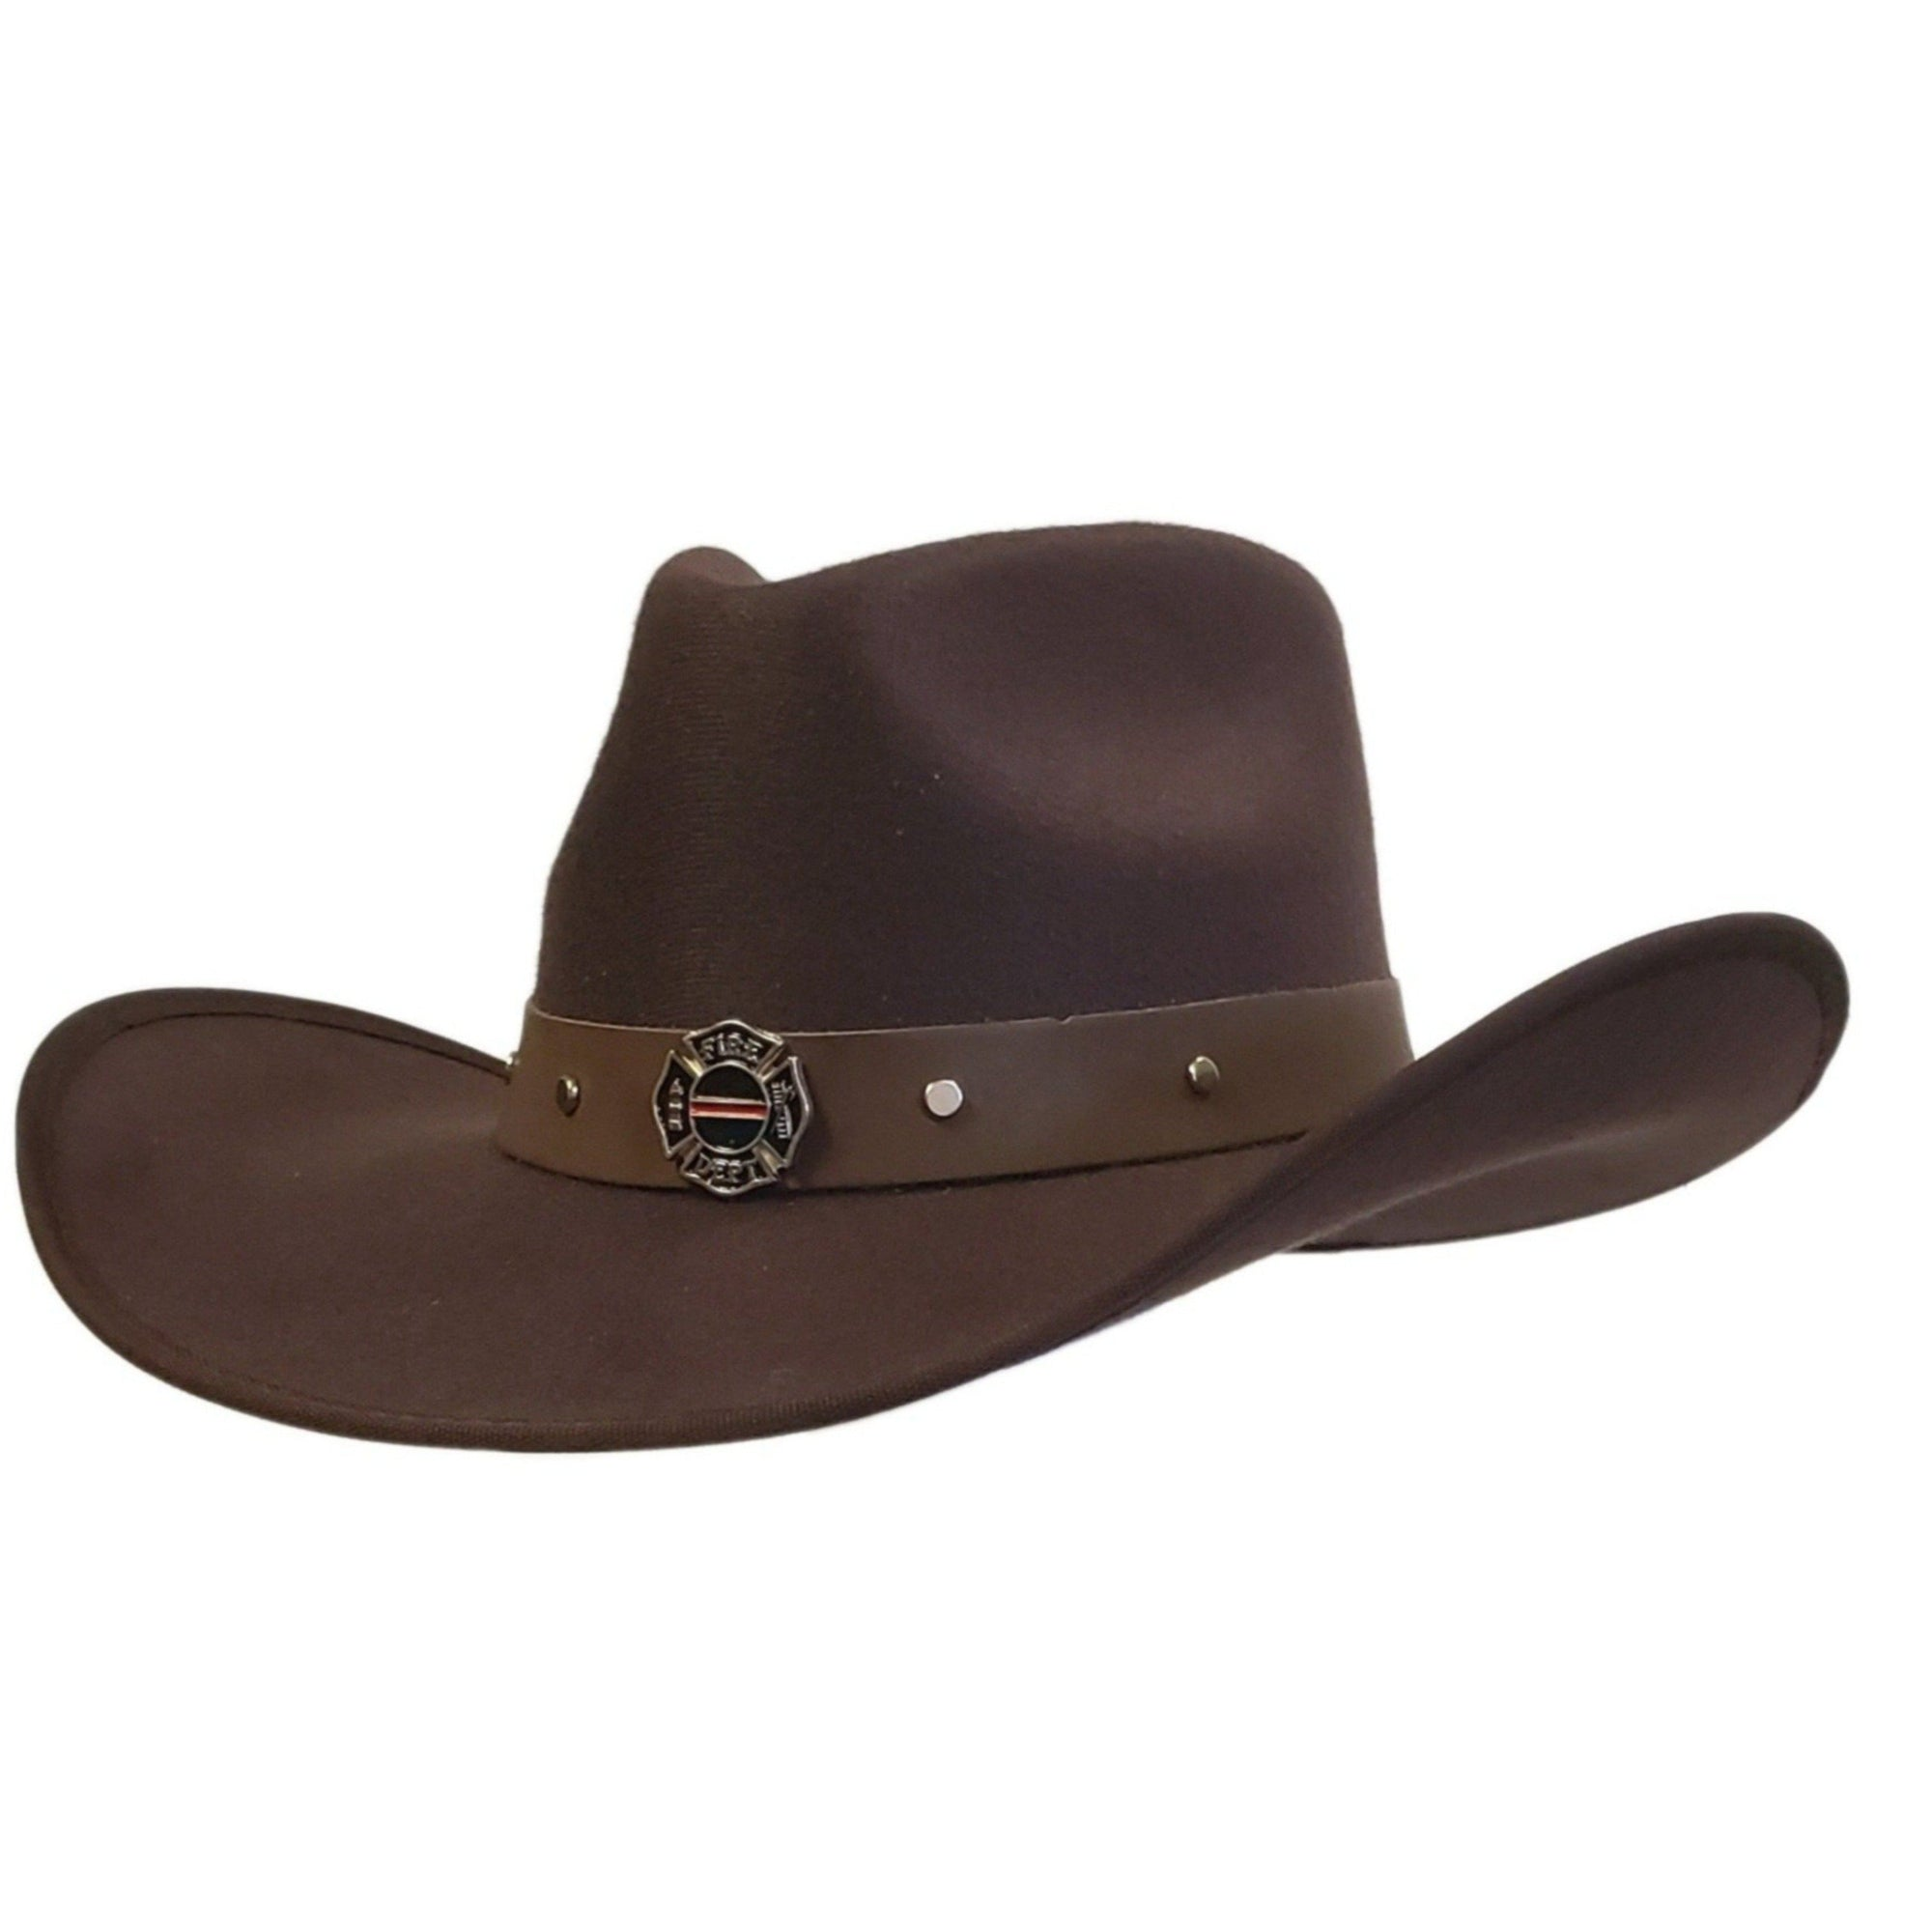 Brown cotton felt cowboy hat with Firefighter emblem. Cowoby hat from Gone country Hats.